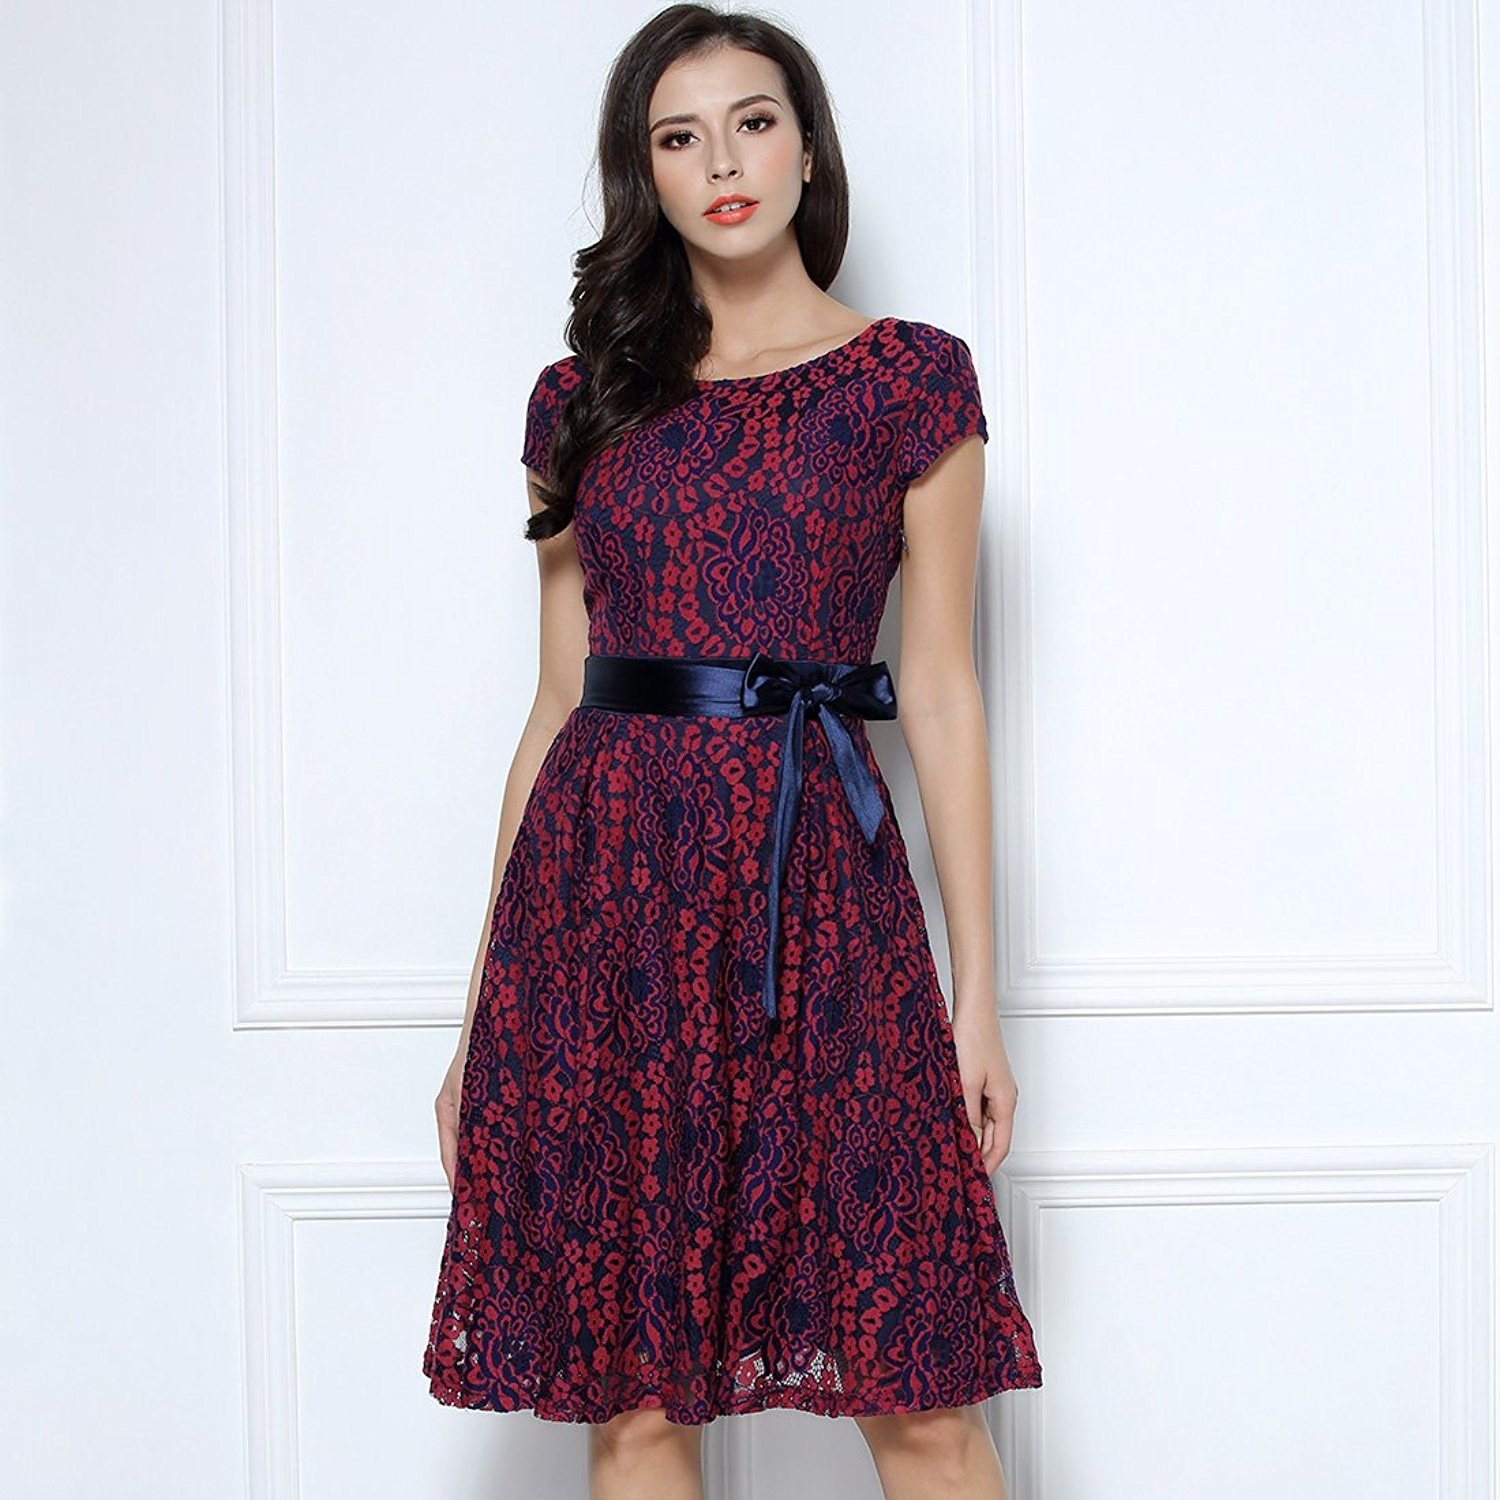 A Colorful Lace Dress So Youu0027re More Memorable Than The Speeches.